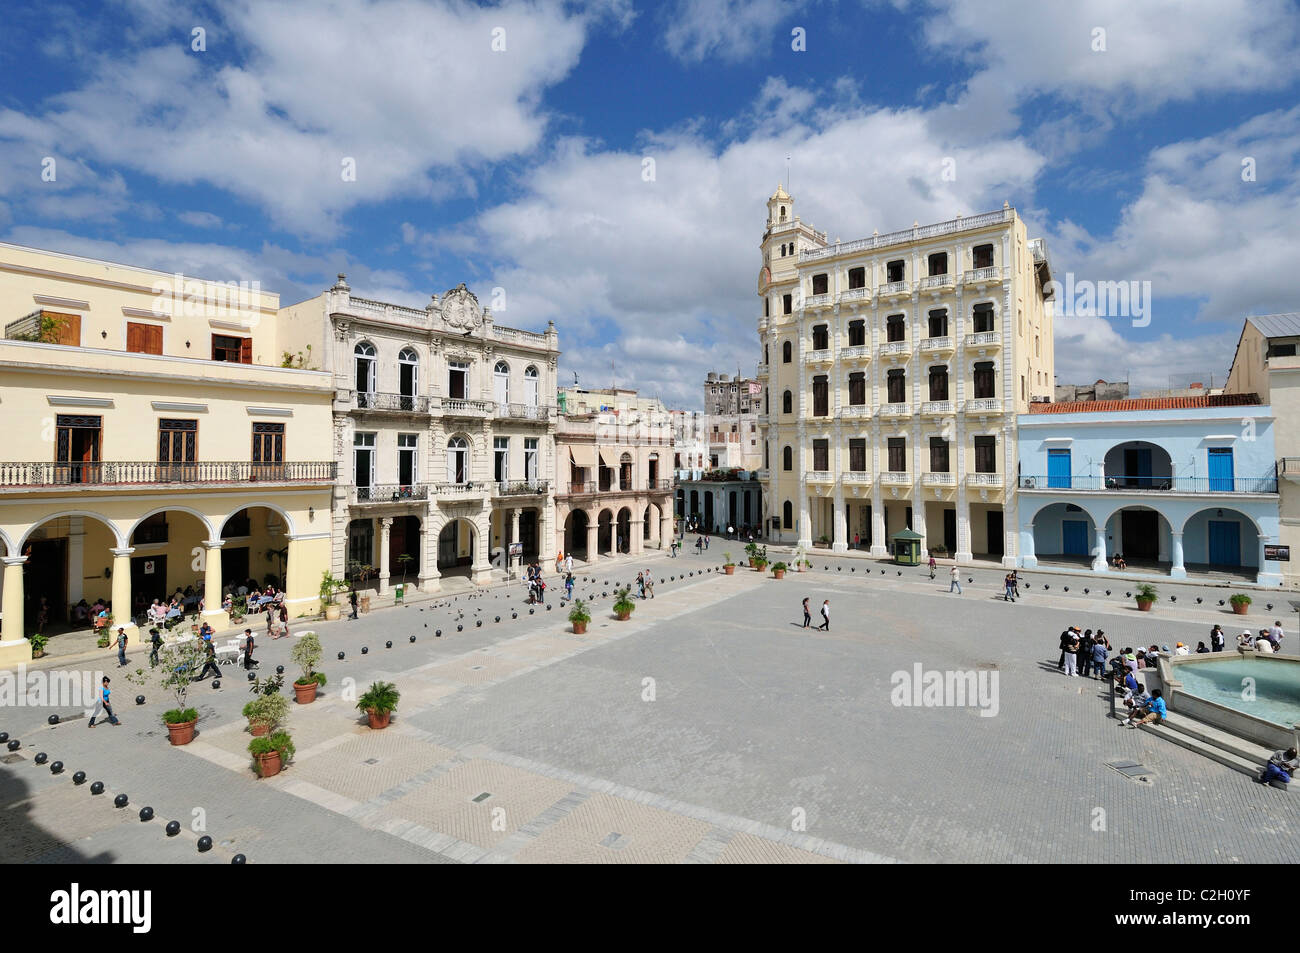 Havana. Cuba. View across Plaza Vieja and the Edificio Gomez Vila (tall building, right), Habana Vieja / Old Havana. - Stock Image